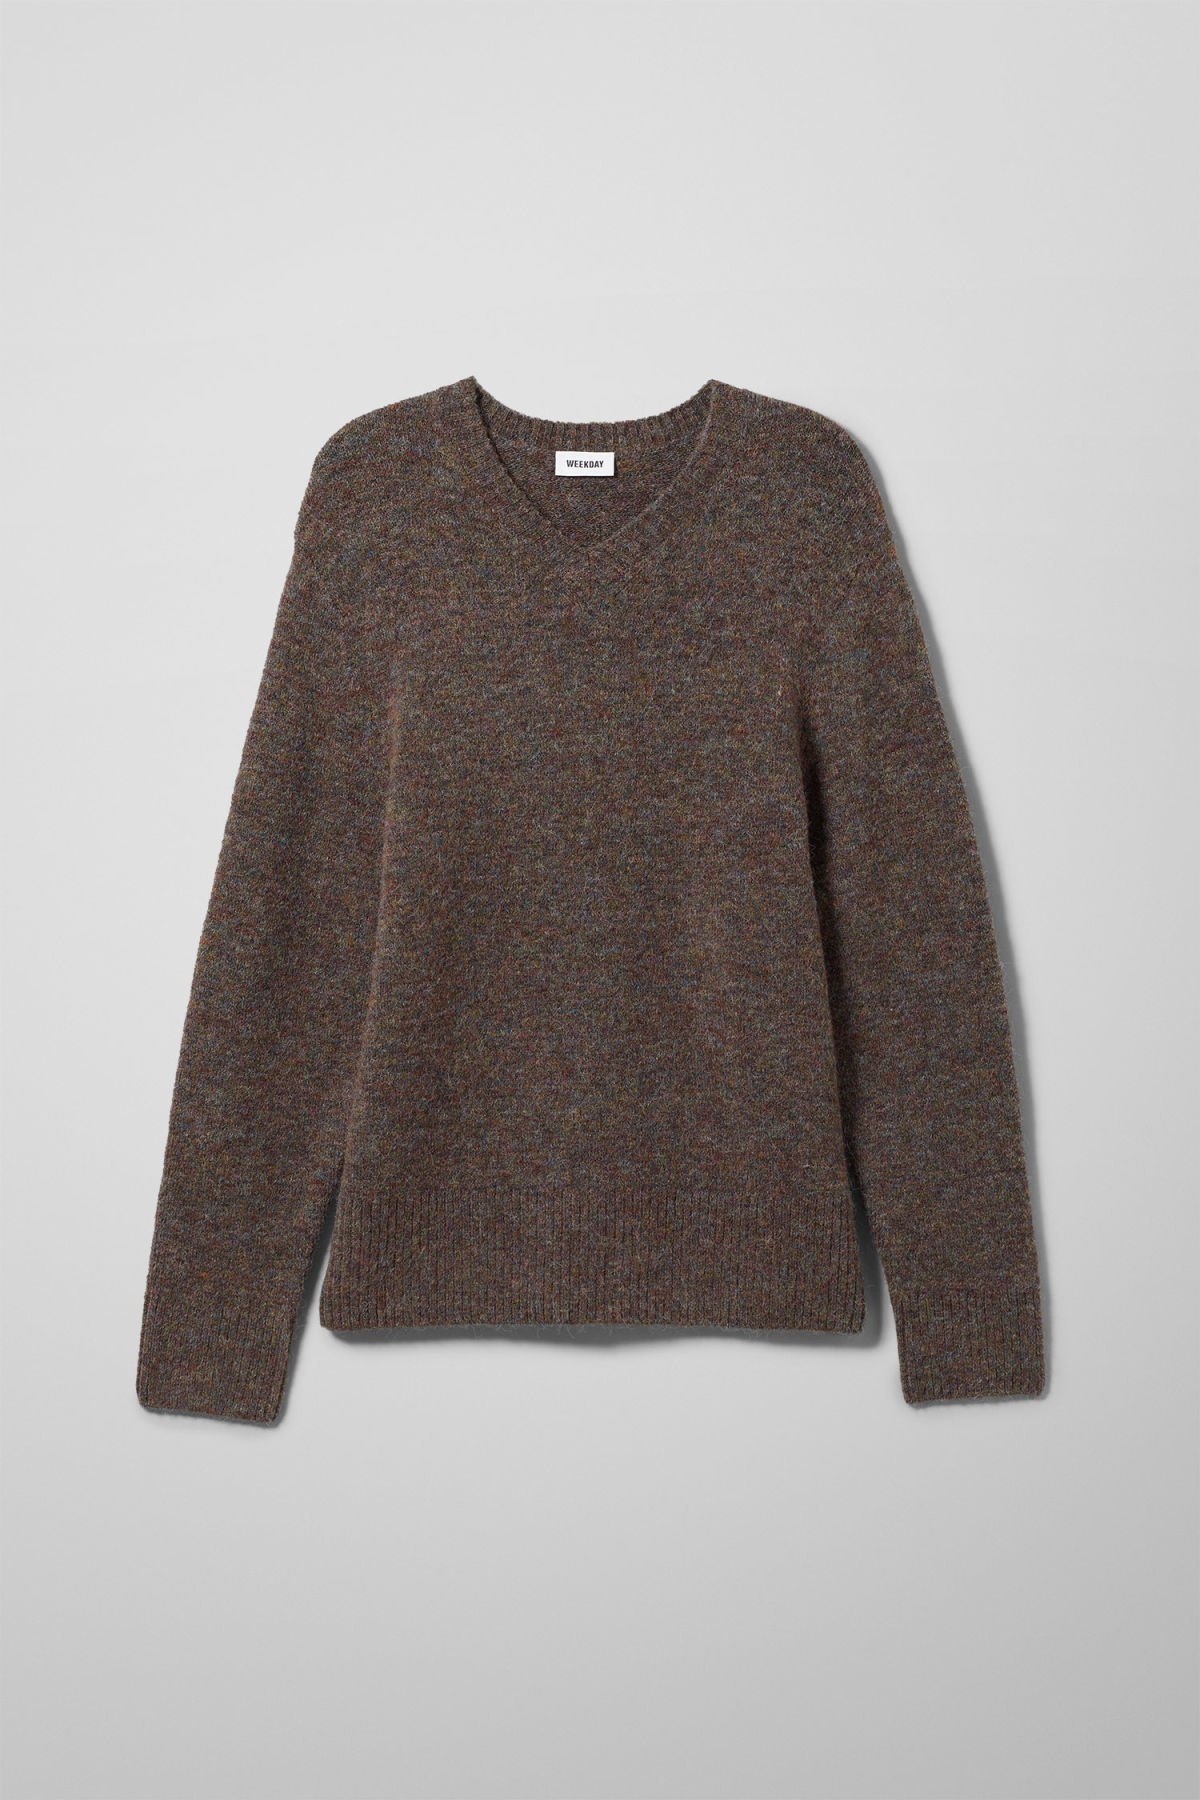 Neck Green Weekday Sweaters Sweater V Danny 7x5wTR8q